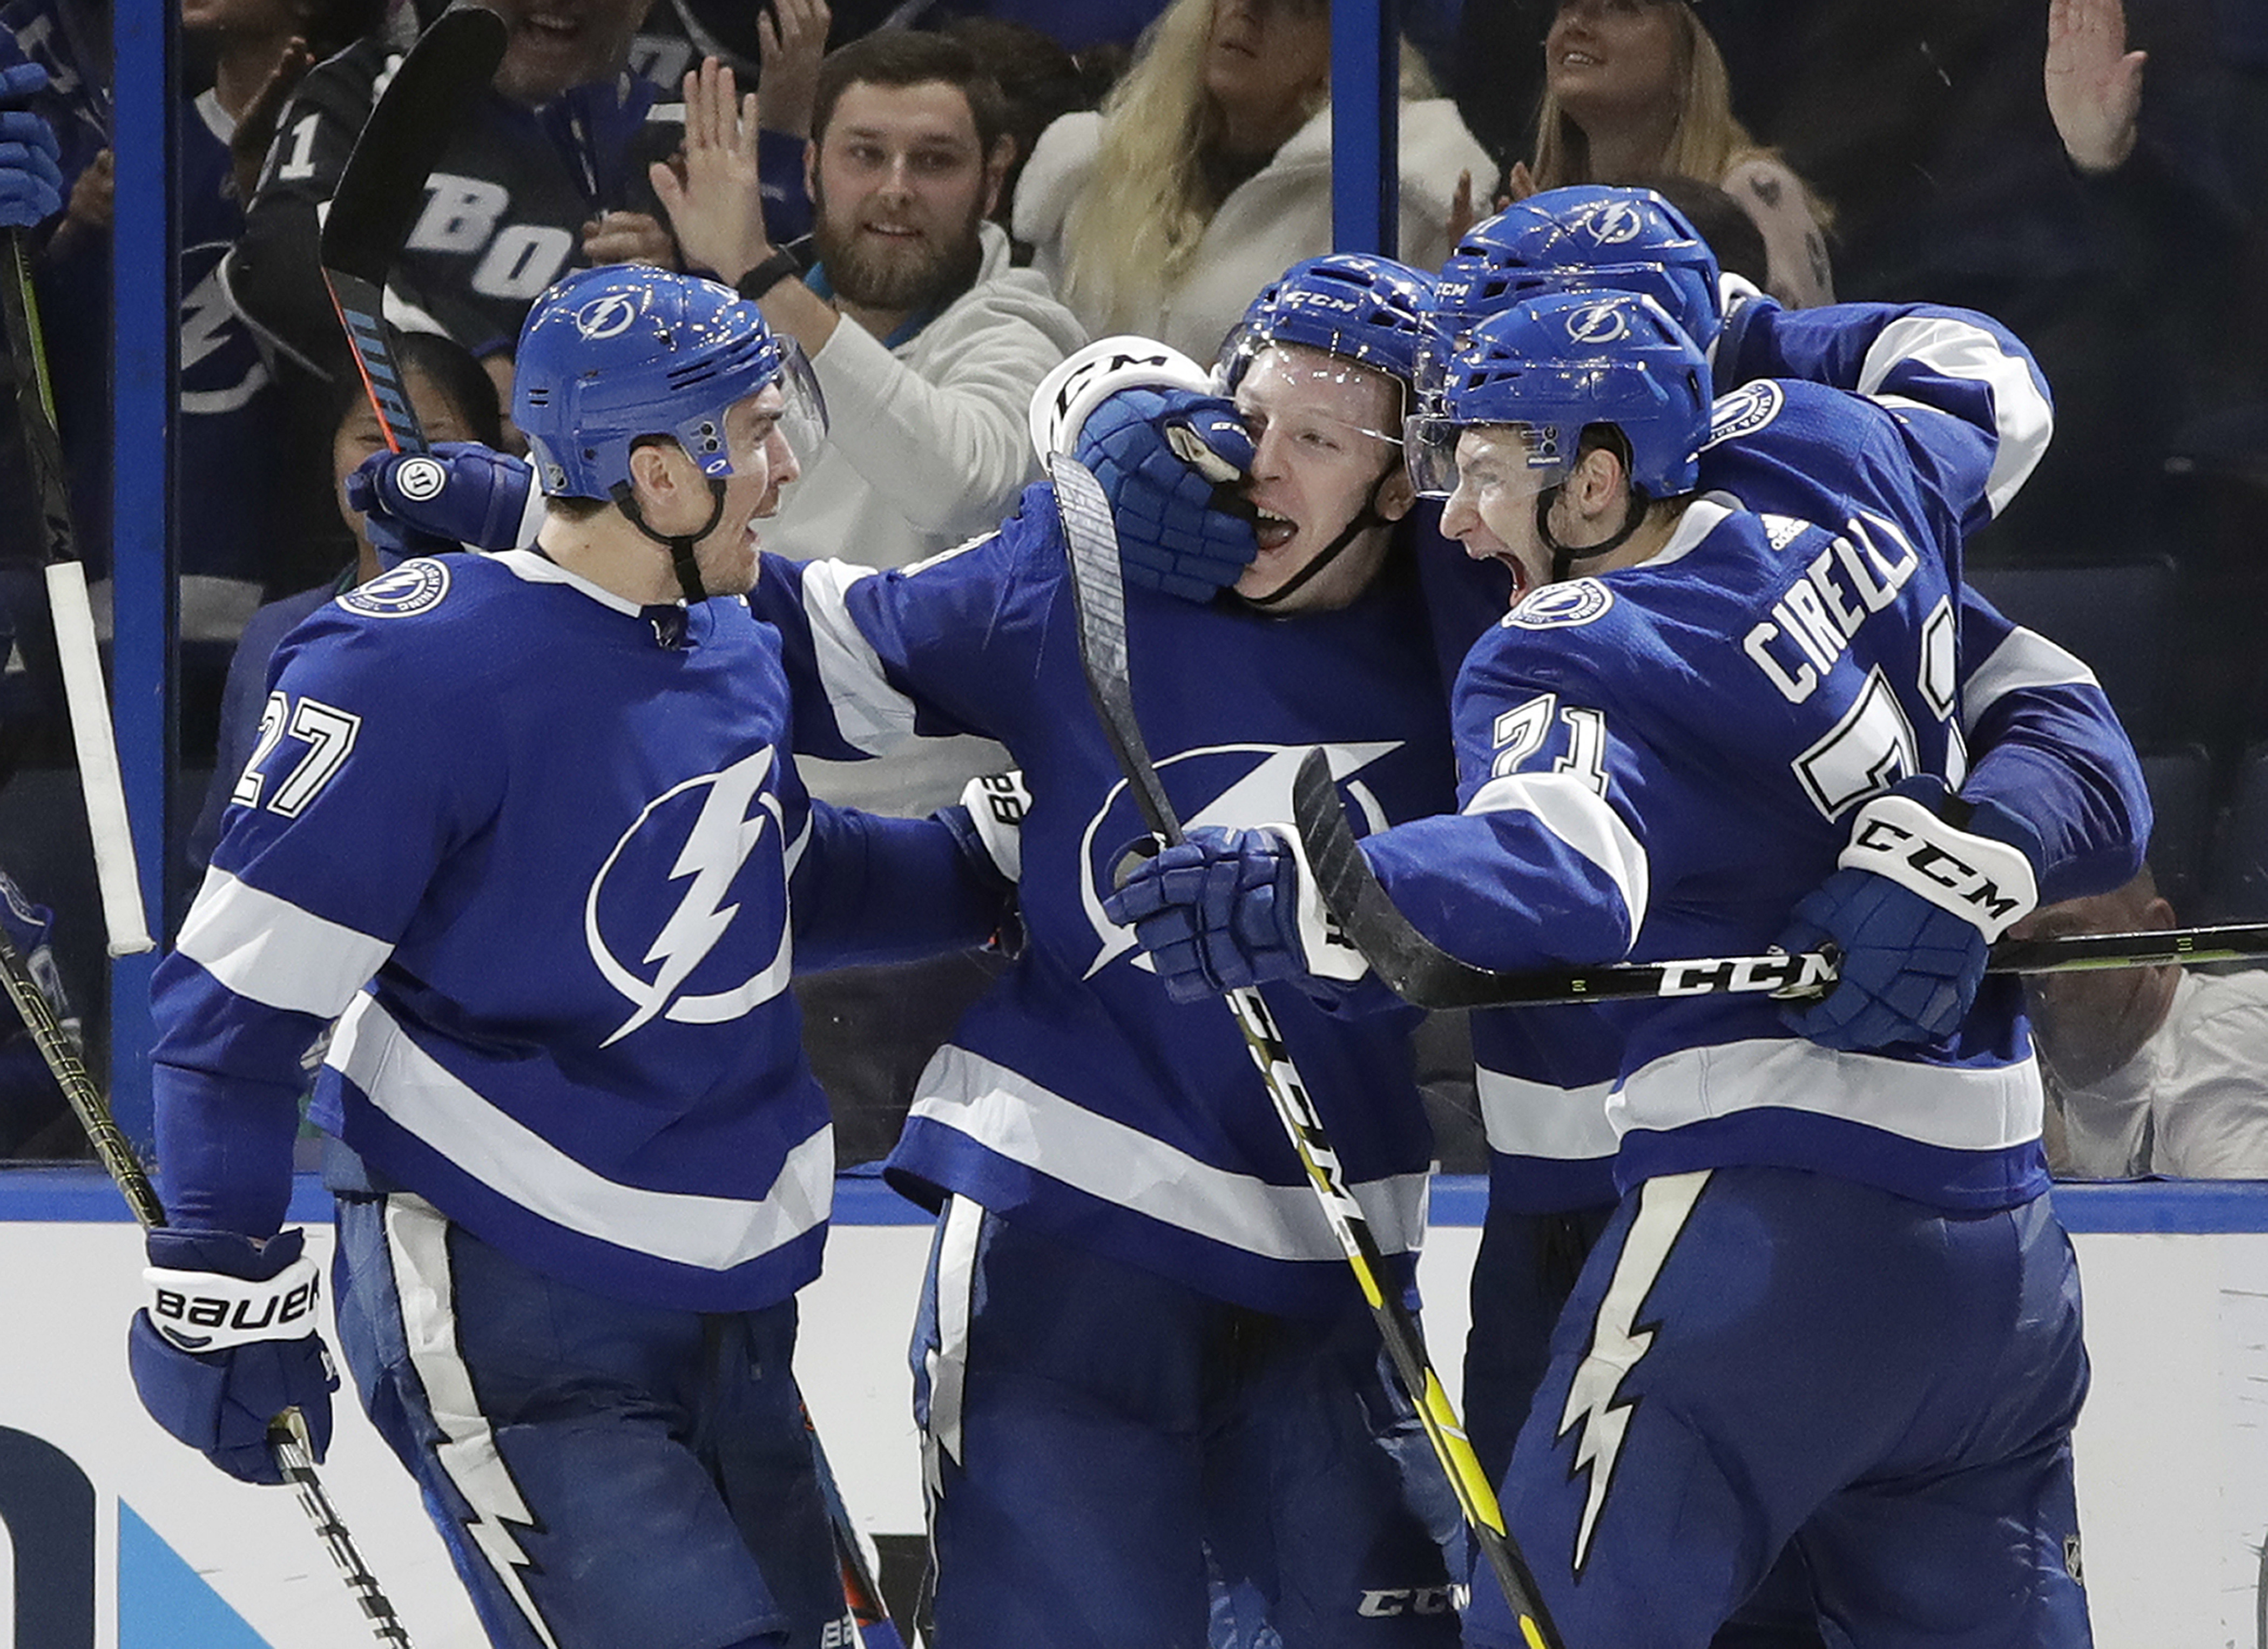 Erne scores late, Lightning beat Canadiens 6-5